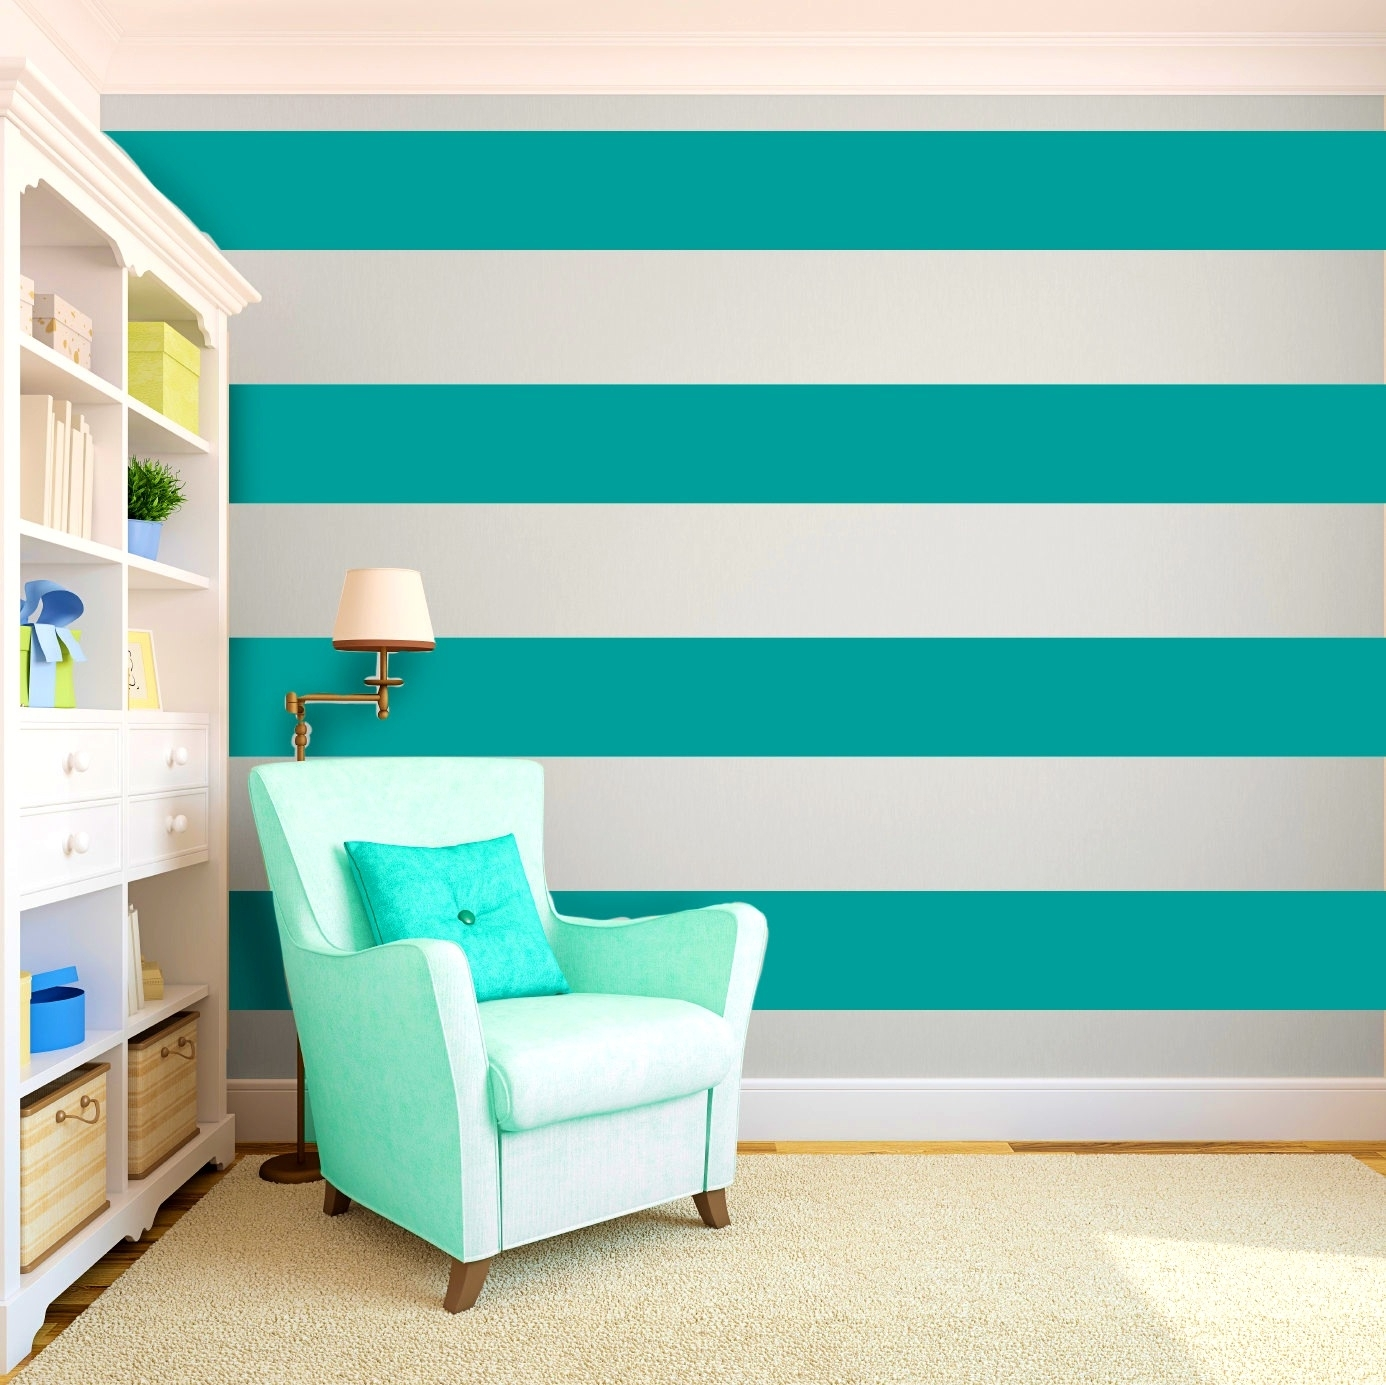 Bathroomappealing Cool Painting Ideas That Turn Walls And Ceilings With 2017 Horizontal Stripes Wall Accents (View 2 of 15)